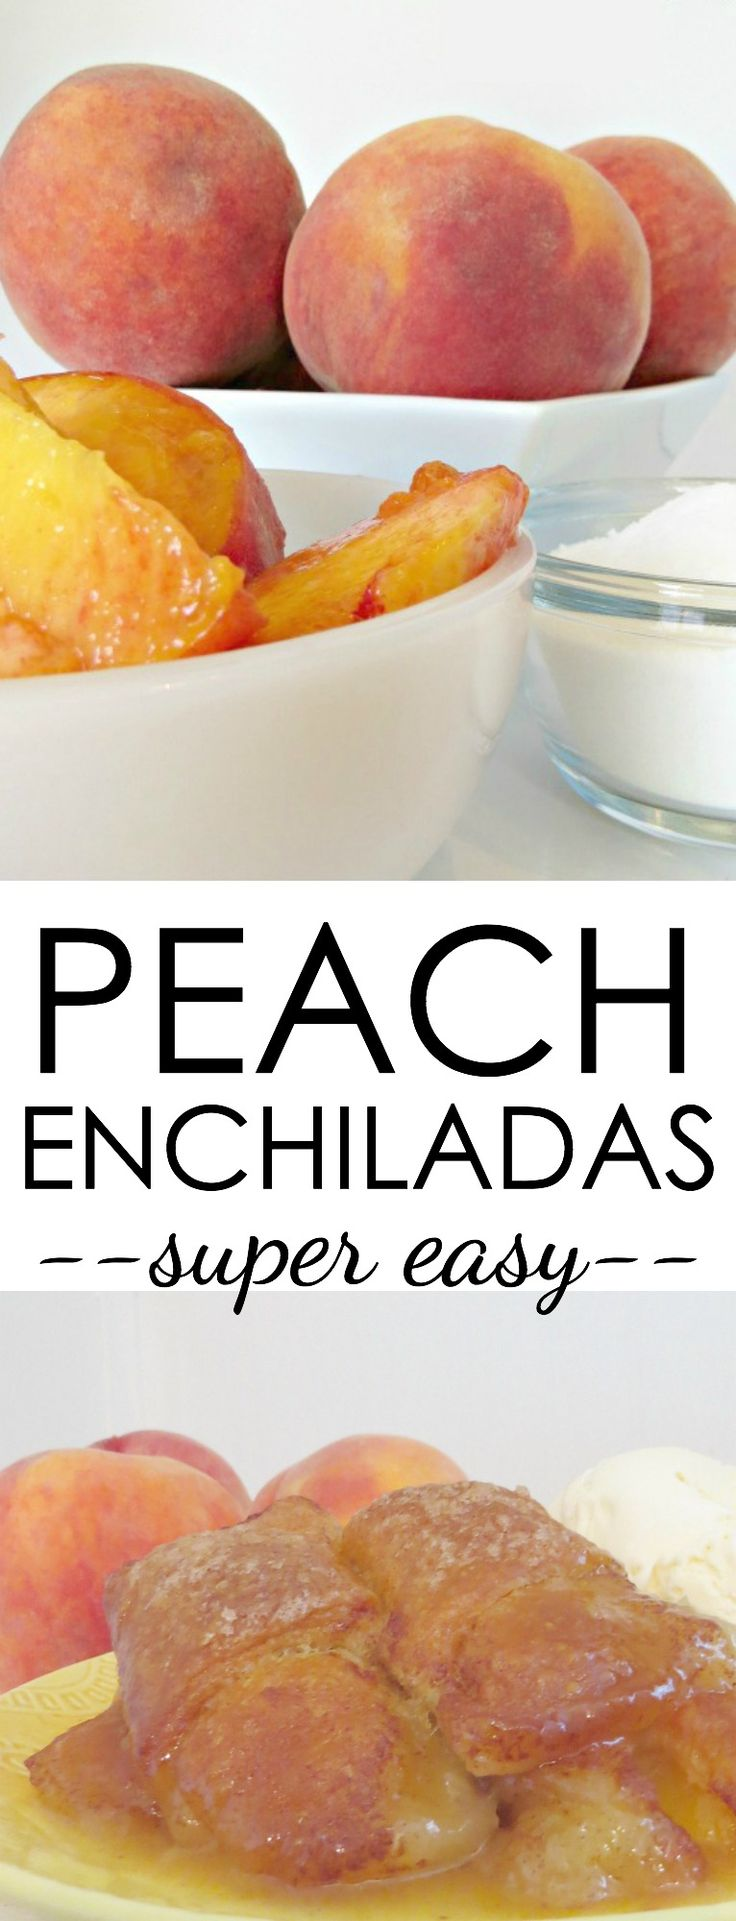 Try this super easy peach dessert that's filled with juicy fresh peaches and wrapped in a crescent roll crust. It's delicious!